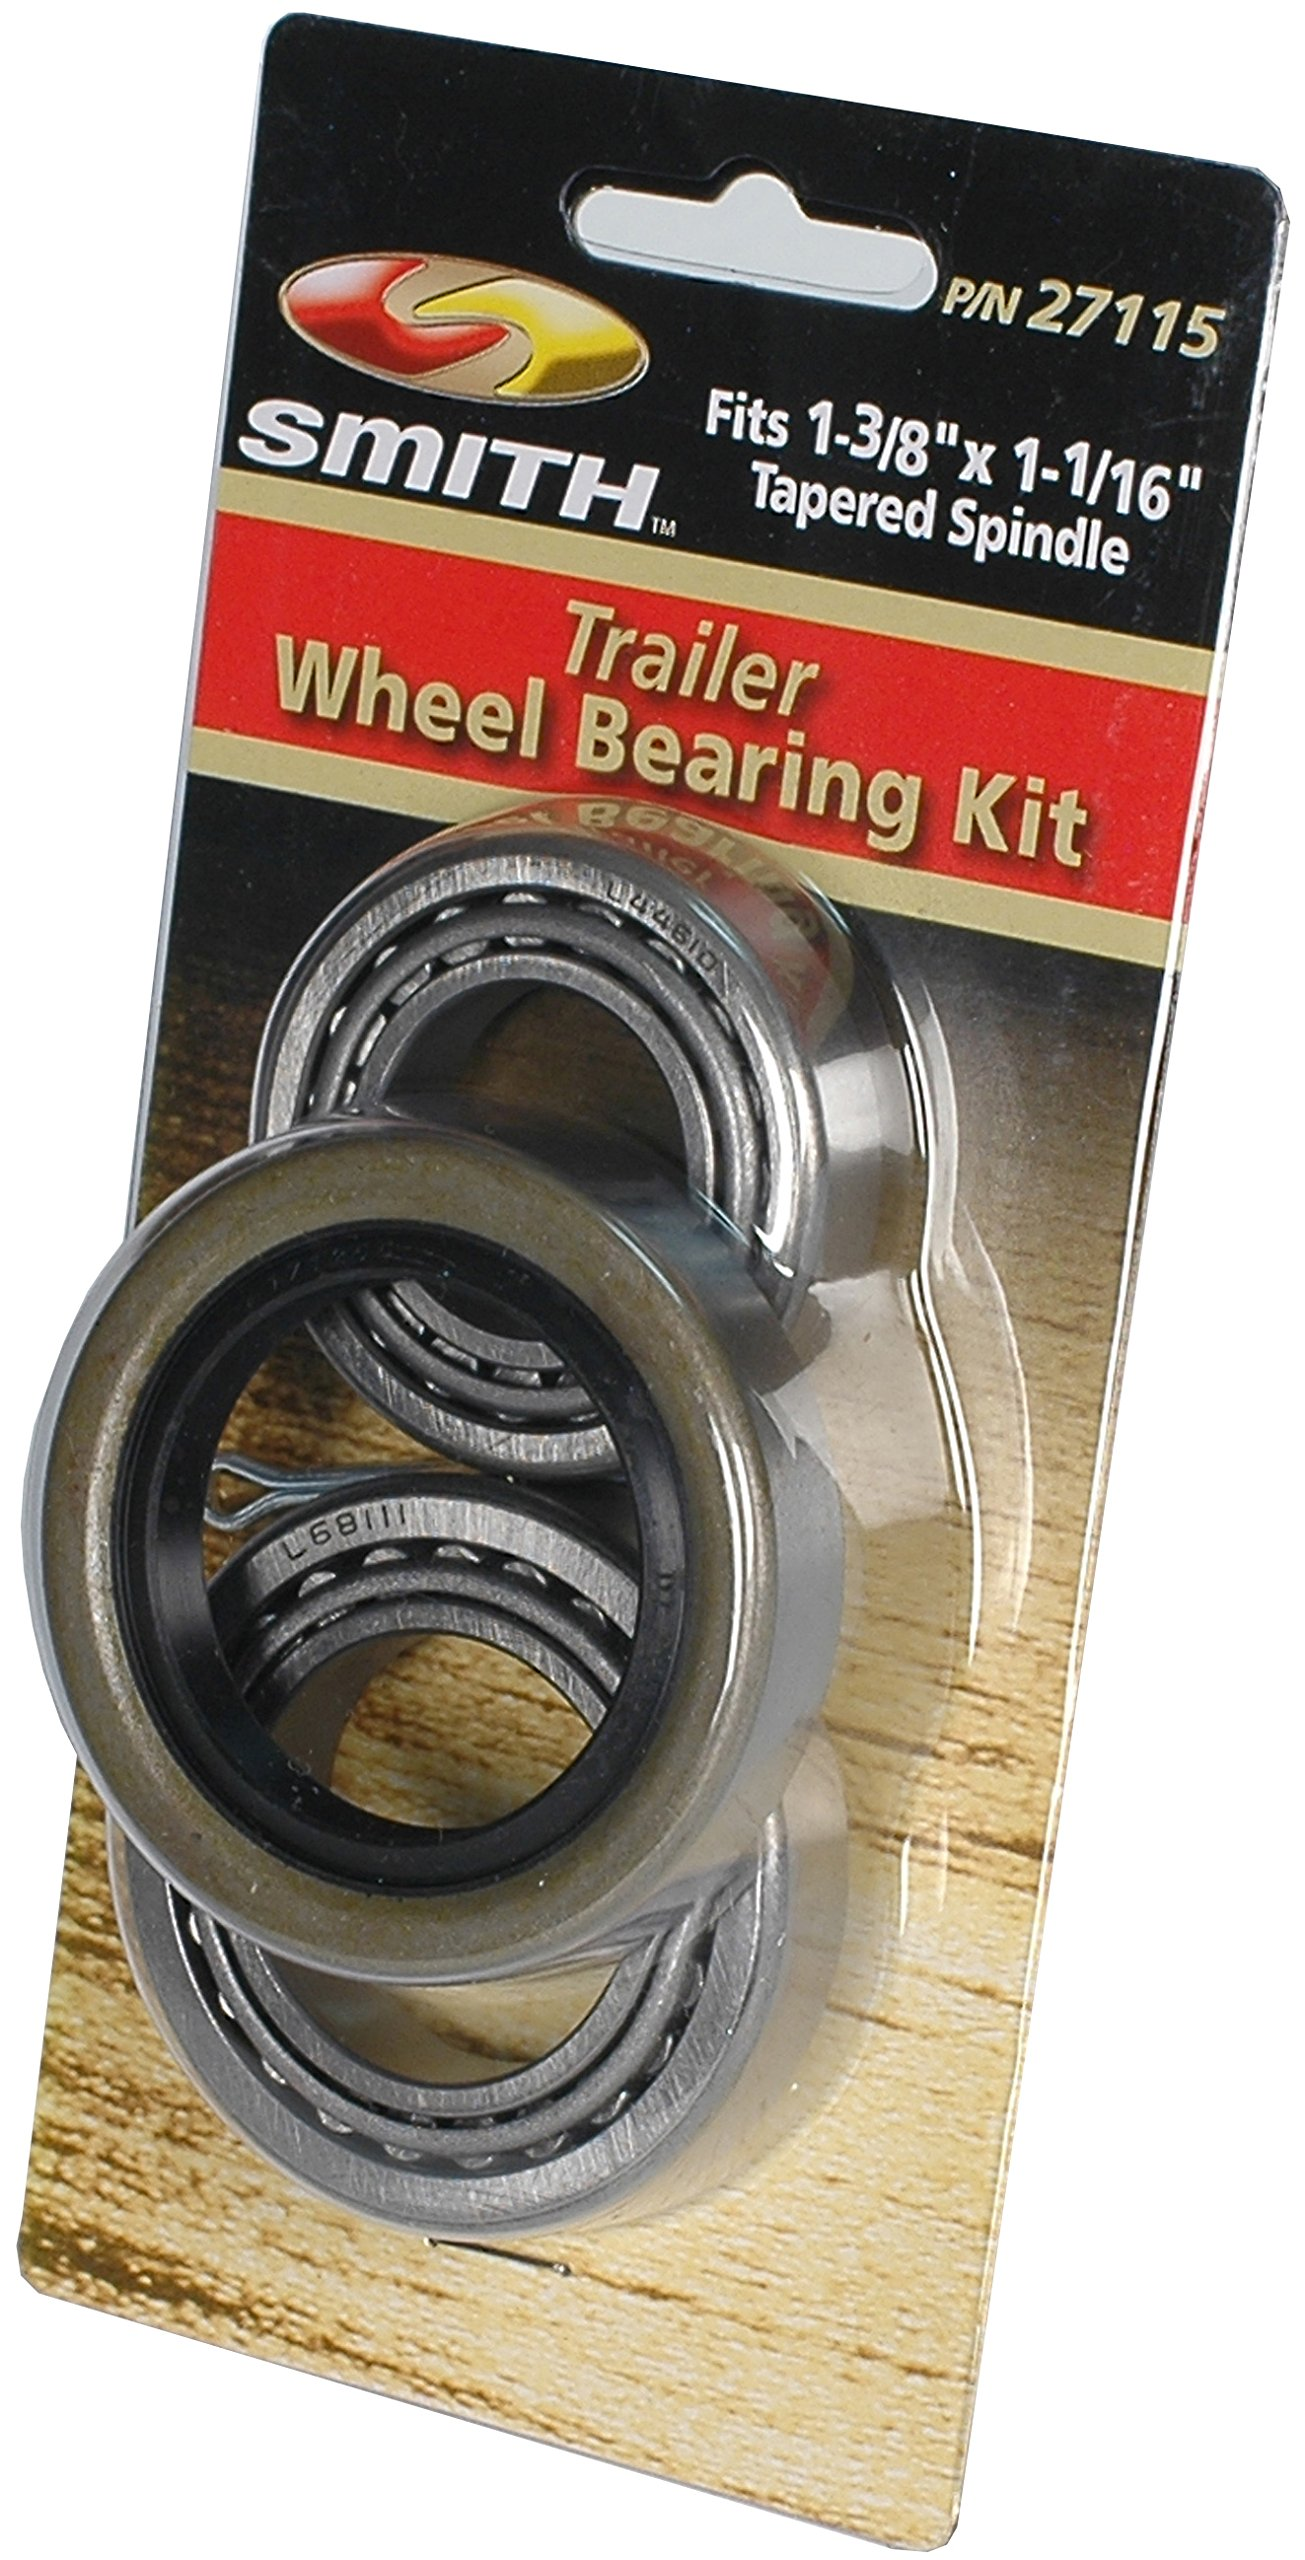 CE Smith Trailer 27115 Tapered Bearing Kit, 1-3/8'' to 1-1/16''- Replacement Parts and Accessories for your Ski Boat, Fishing Boat or Sailboat Trailer